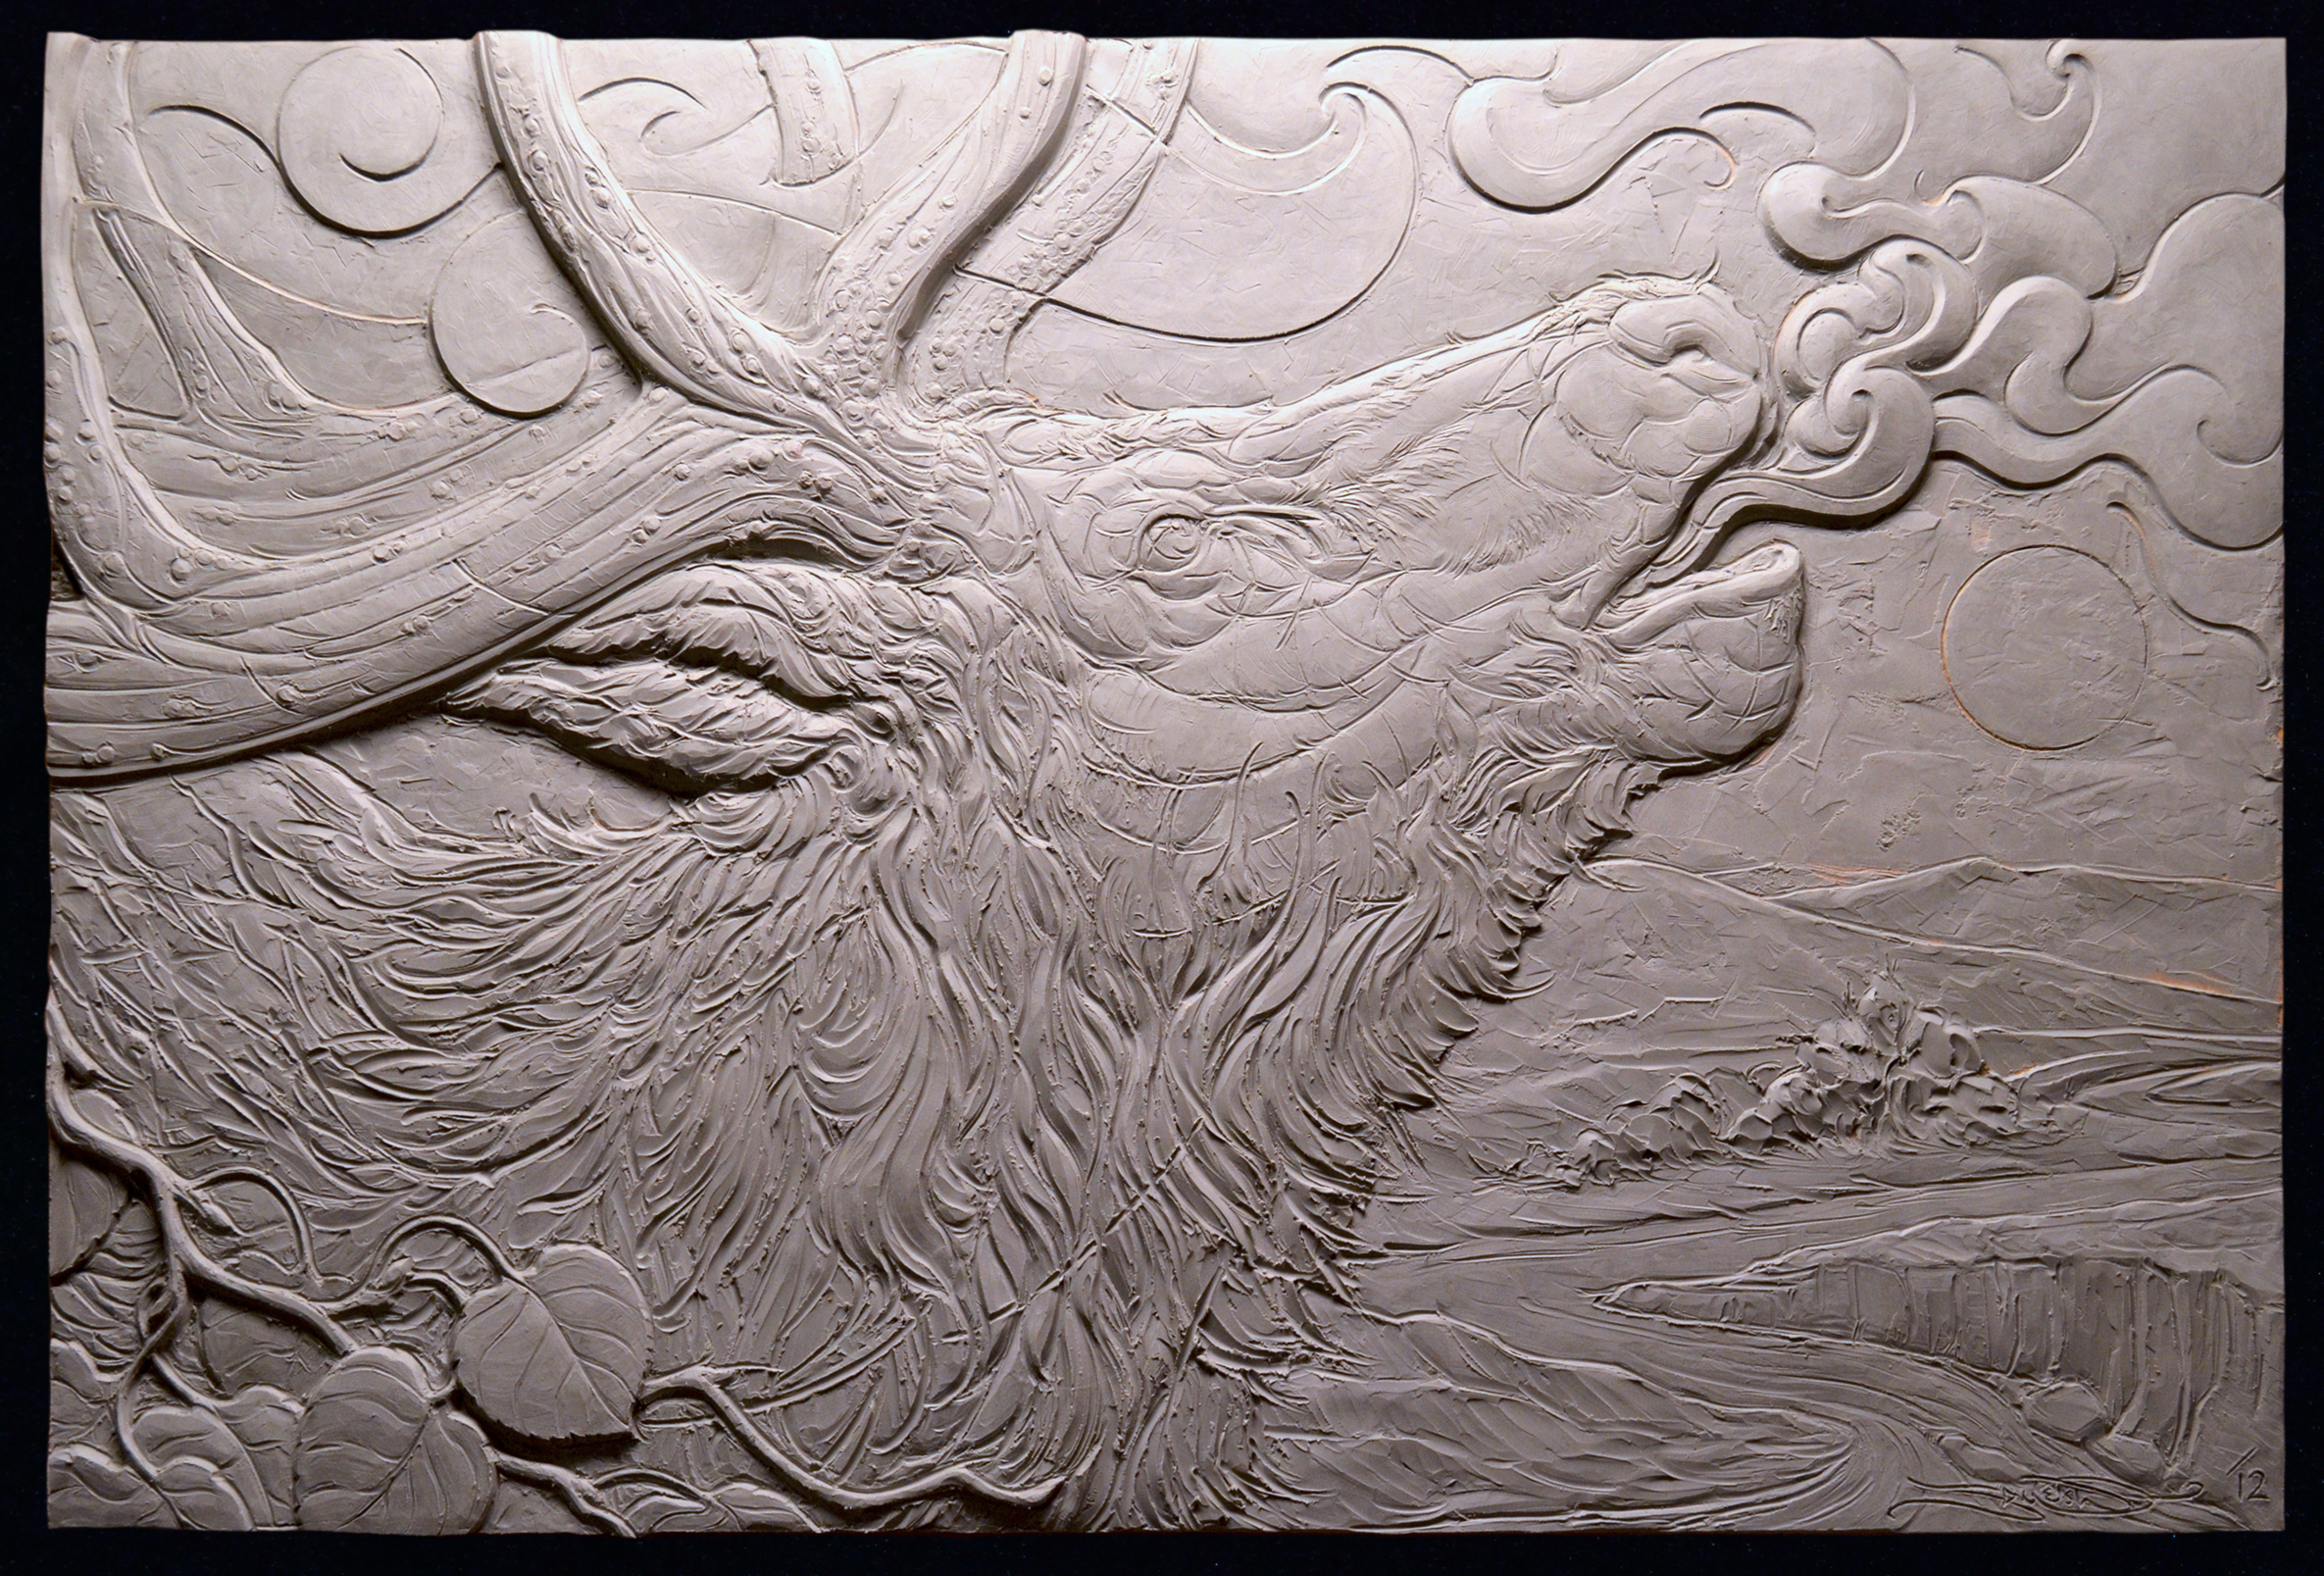 Image of clay process (grey). Finished product in bronze.